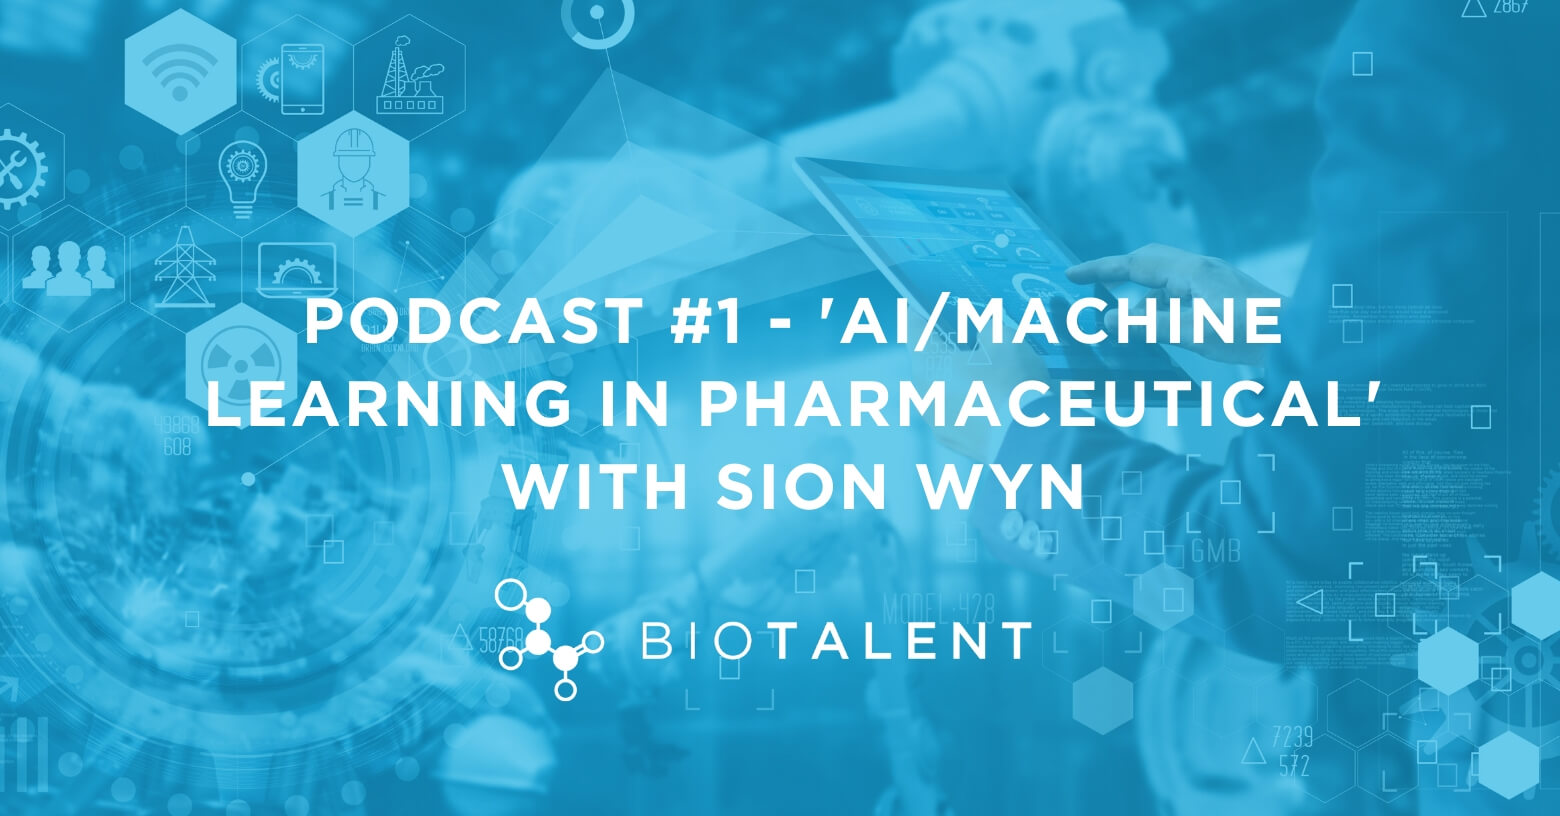 Podcast Episode #1 - 'AI/Machine Learning in Pharmaceutical' with Sion Wyn